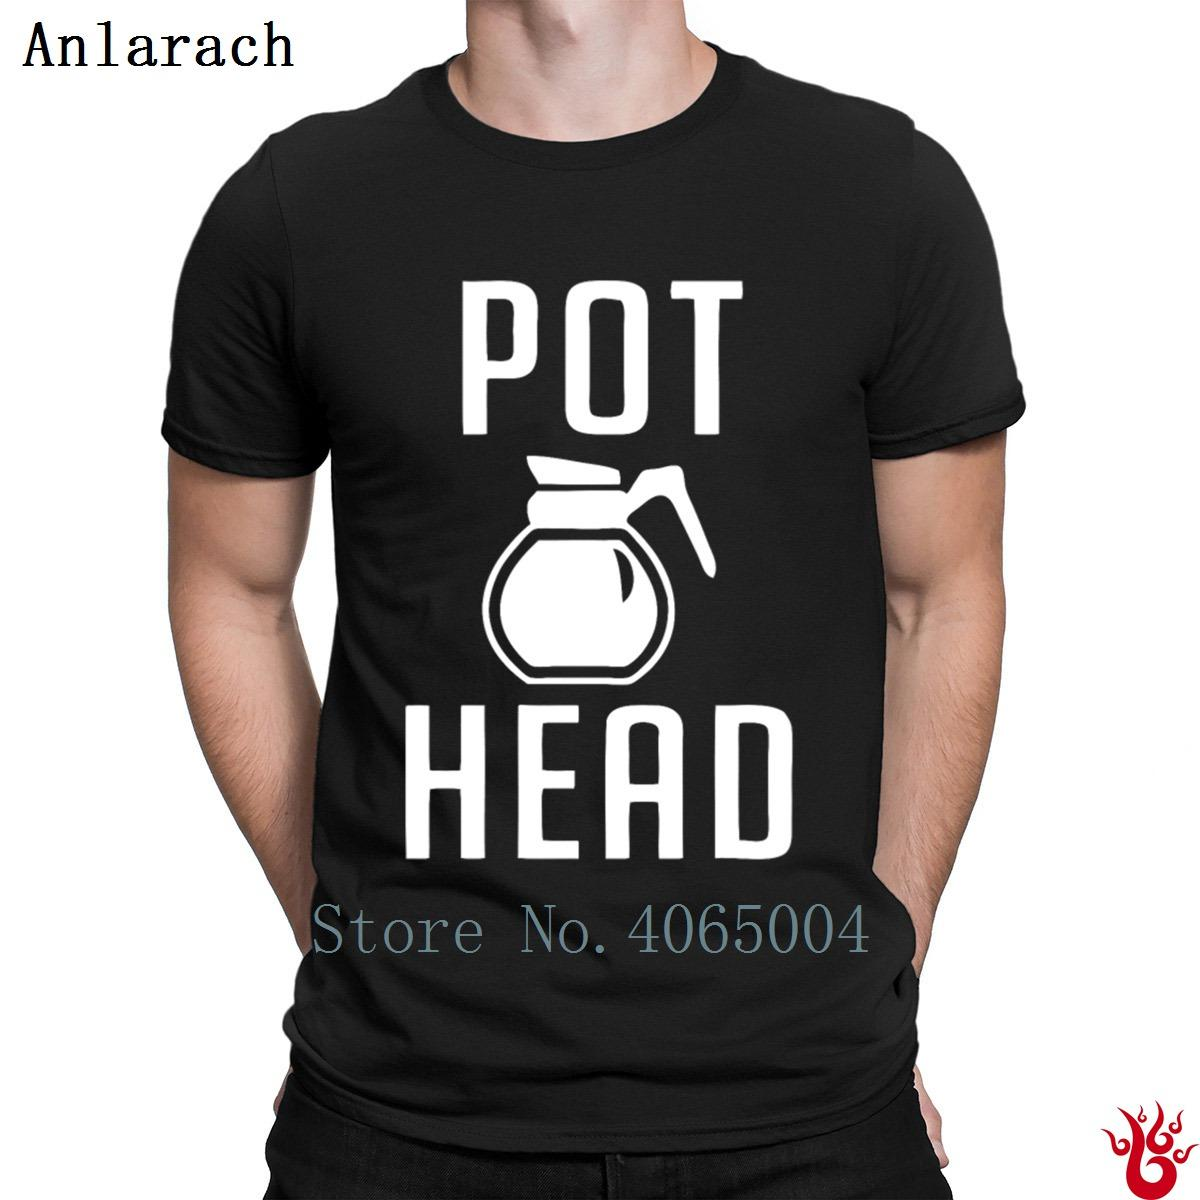 6707460df7c Coffee Pot Head Tshirts Graphic Hip Hop Designer O Neck Men T Shirt 2018  Short Sleeve Family Basic Clothing Comedy T Shirt Humorous T Shirt From  Dzuprighth